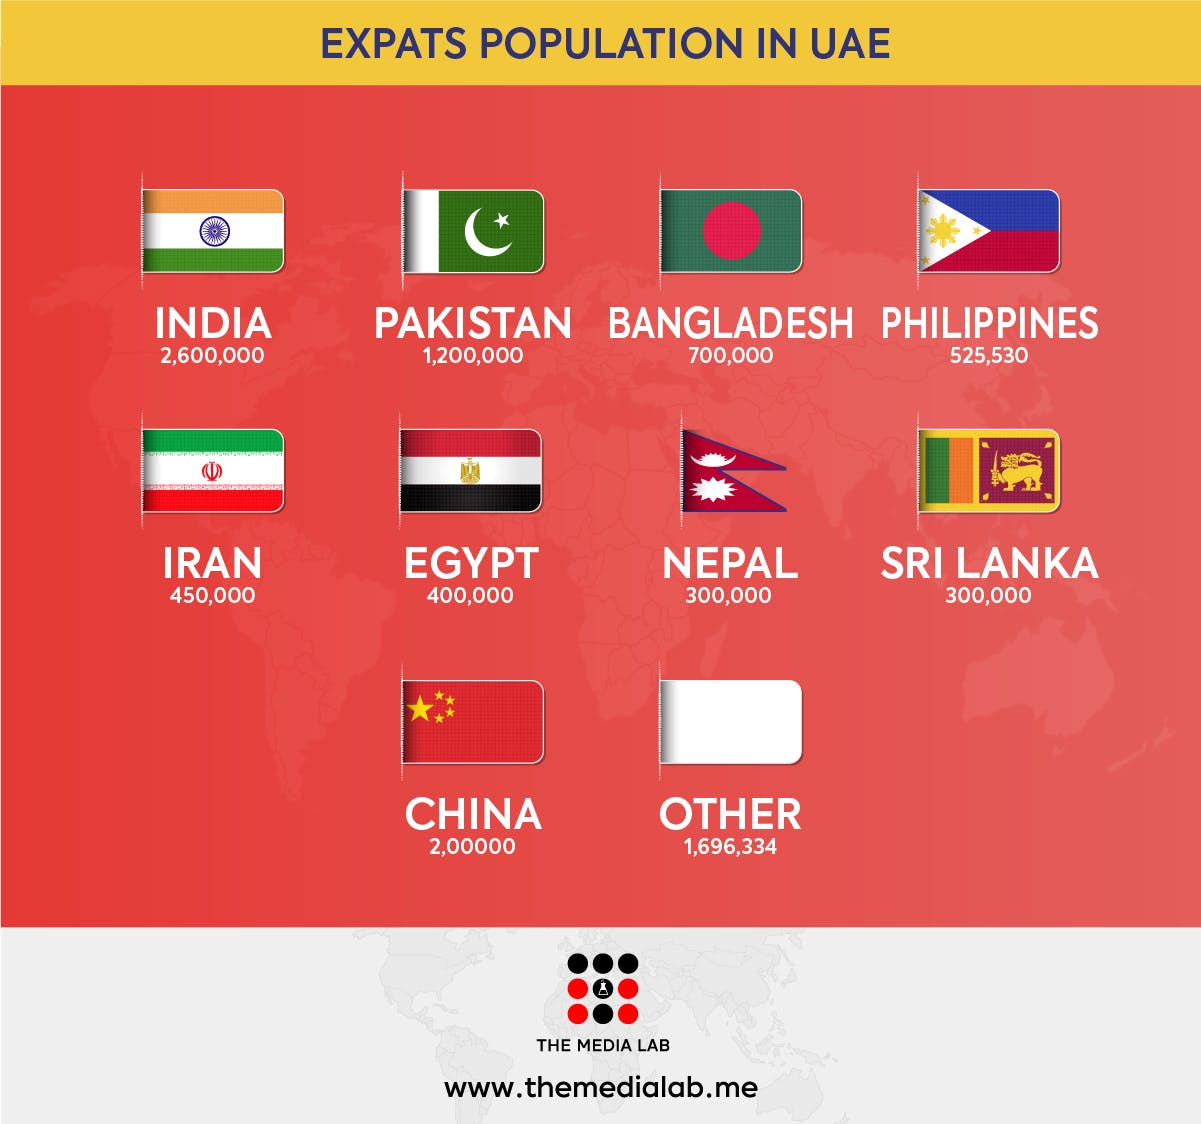 Expats population in UAE 2019